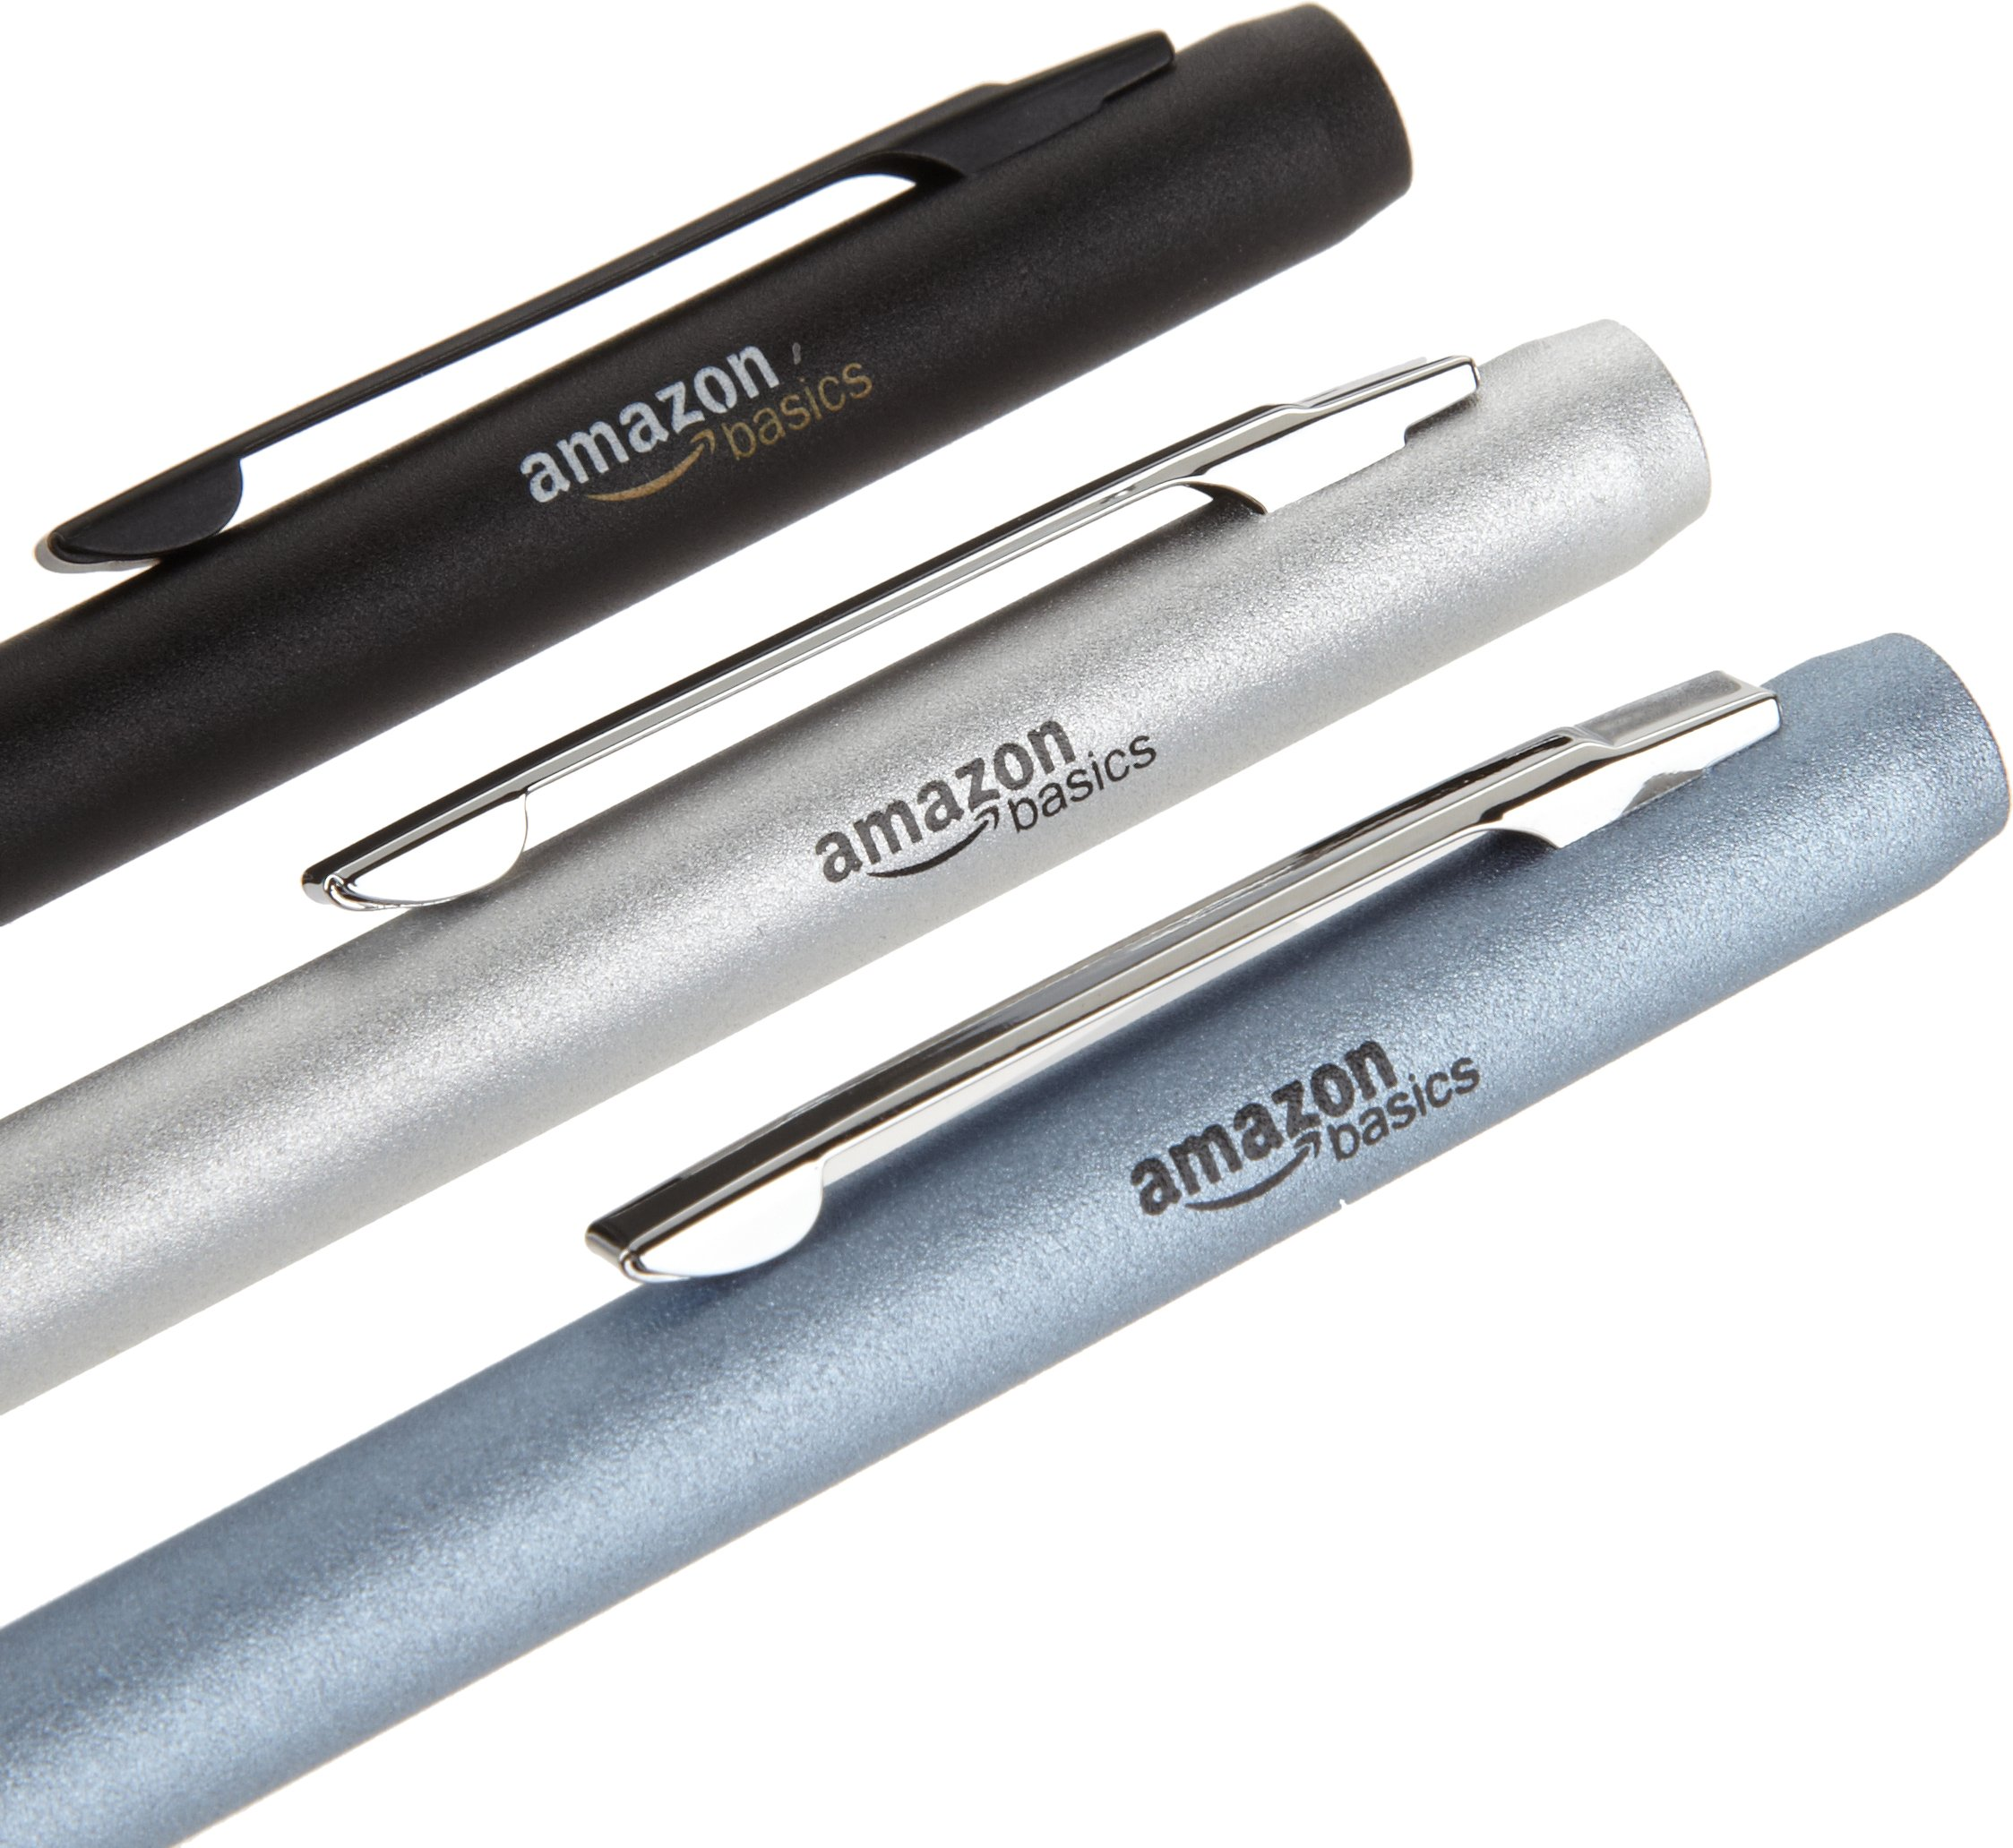 AmazonBasics 3-Pack Executive Stylus for Touchscreen Devices (Black, Silver, Blue) by AmazonBasics (Image #3)